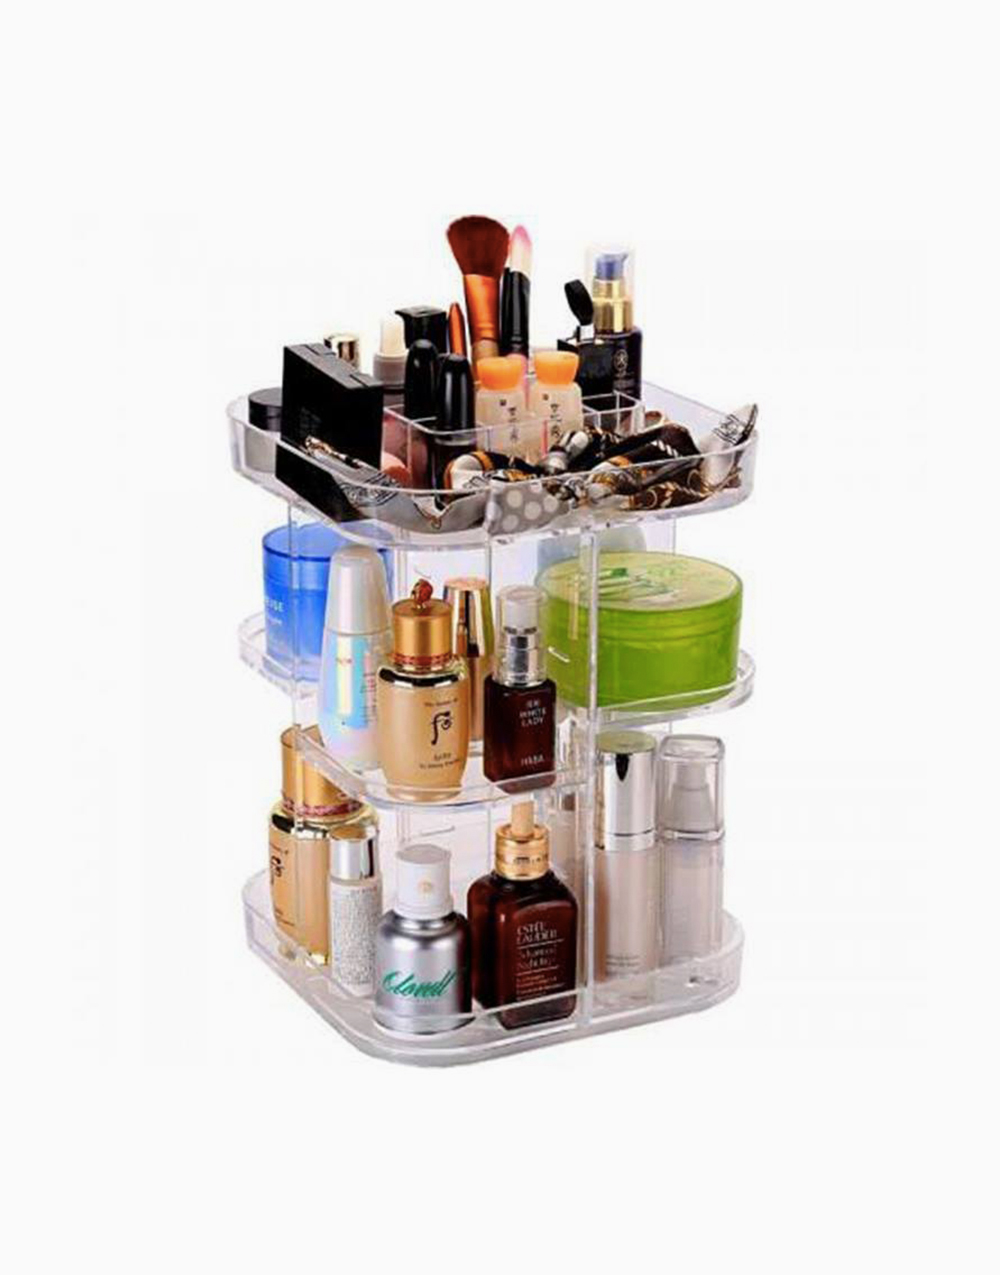 Square Rotating Acrylic Makeup Organizer by Brush Works